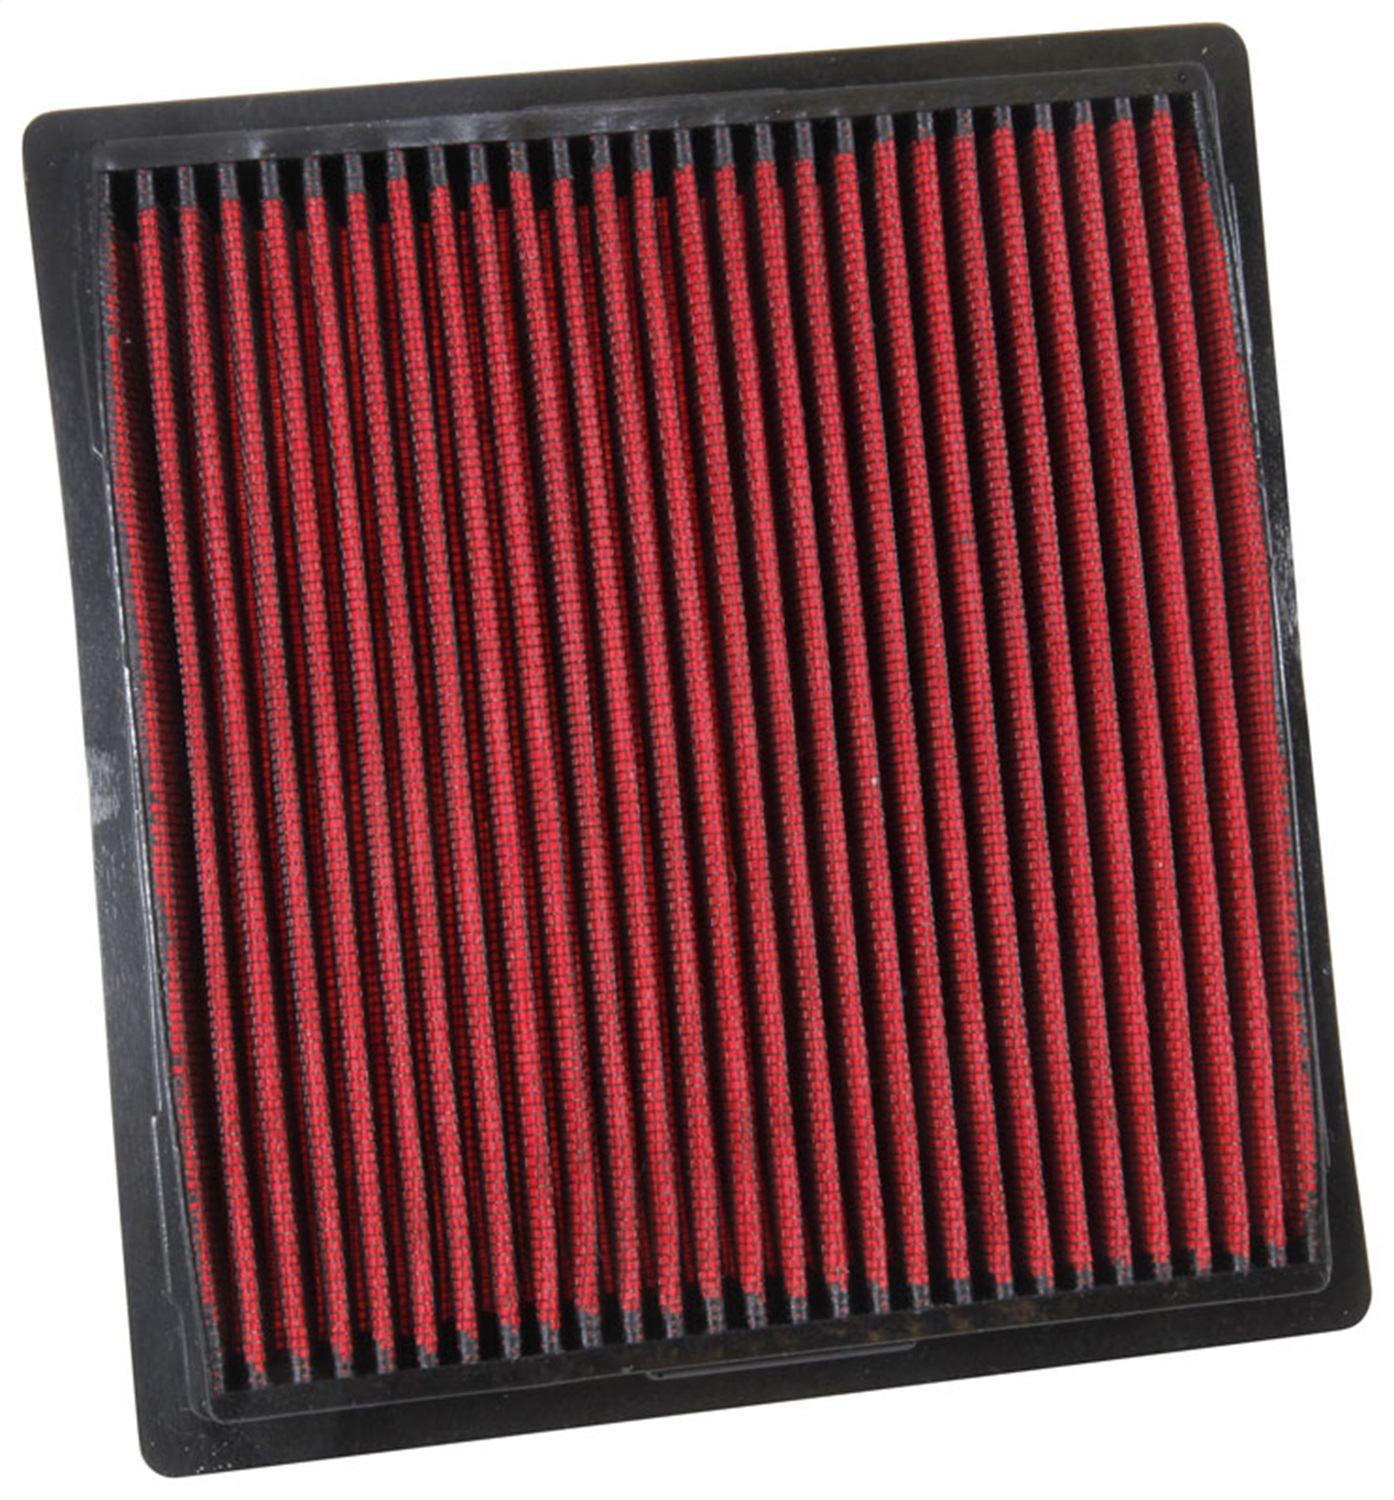 Cotton Gauze Red Spectre 9732 Universal Air Filter Washable Universal